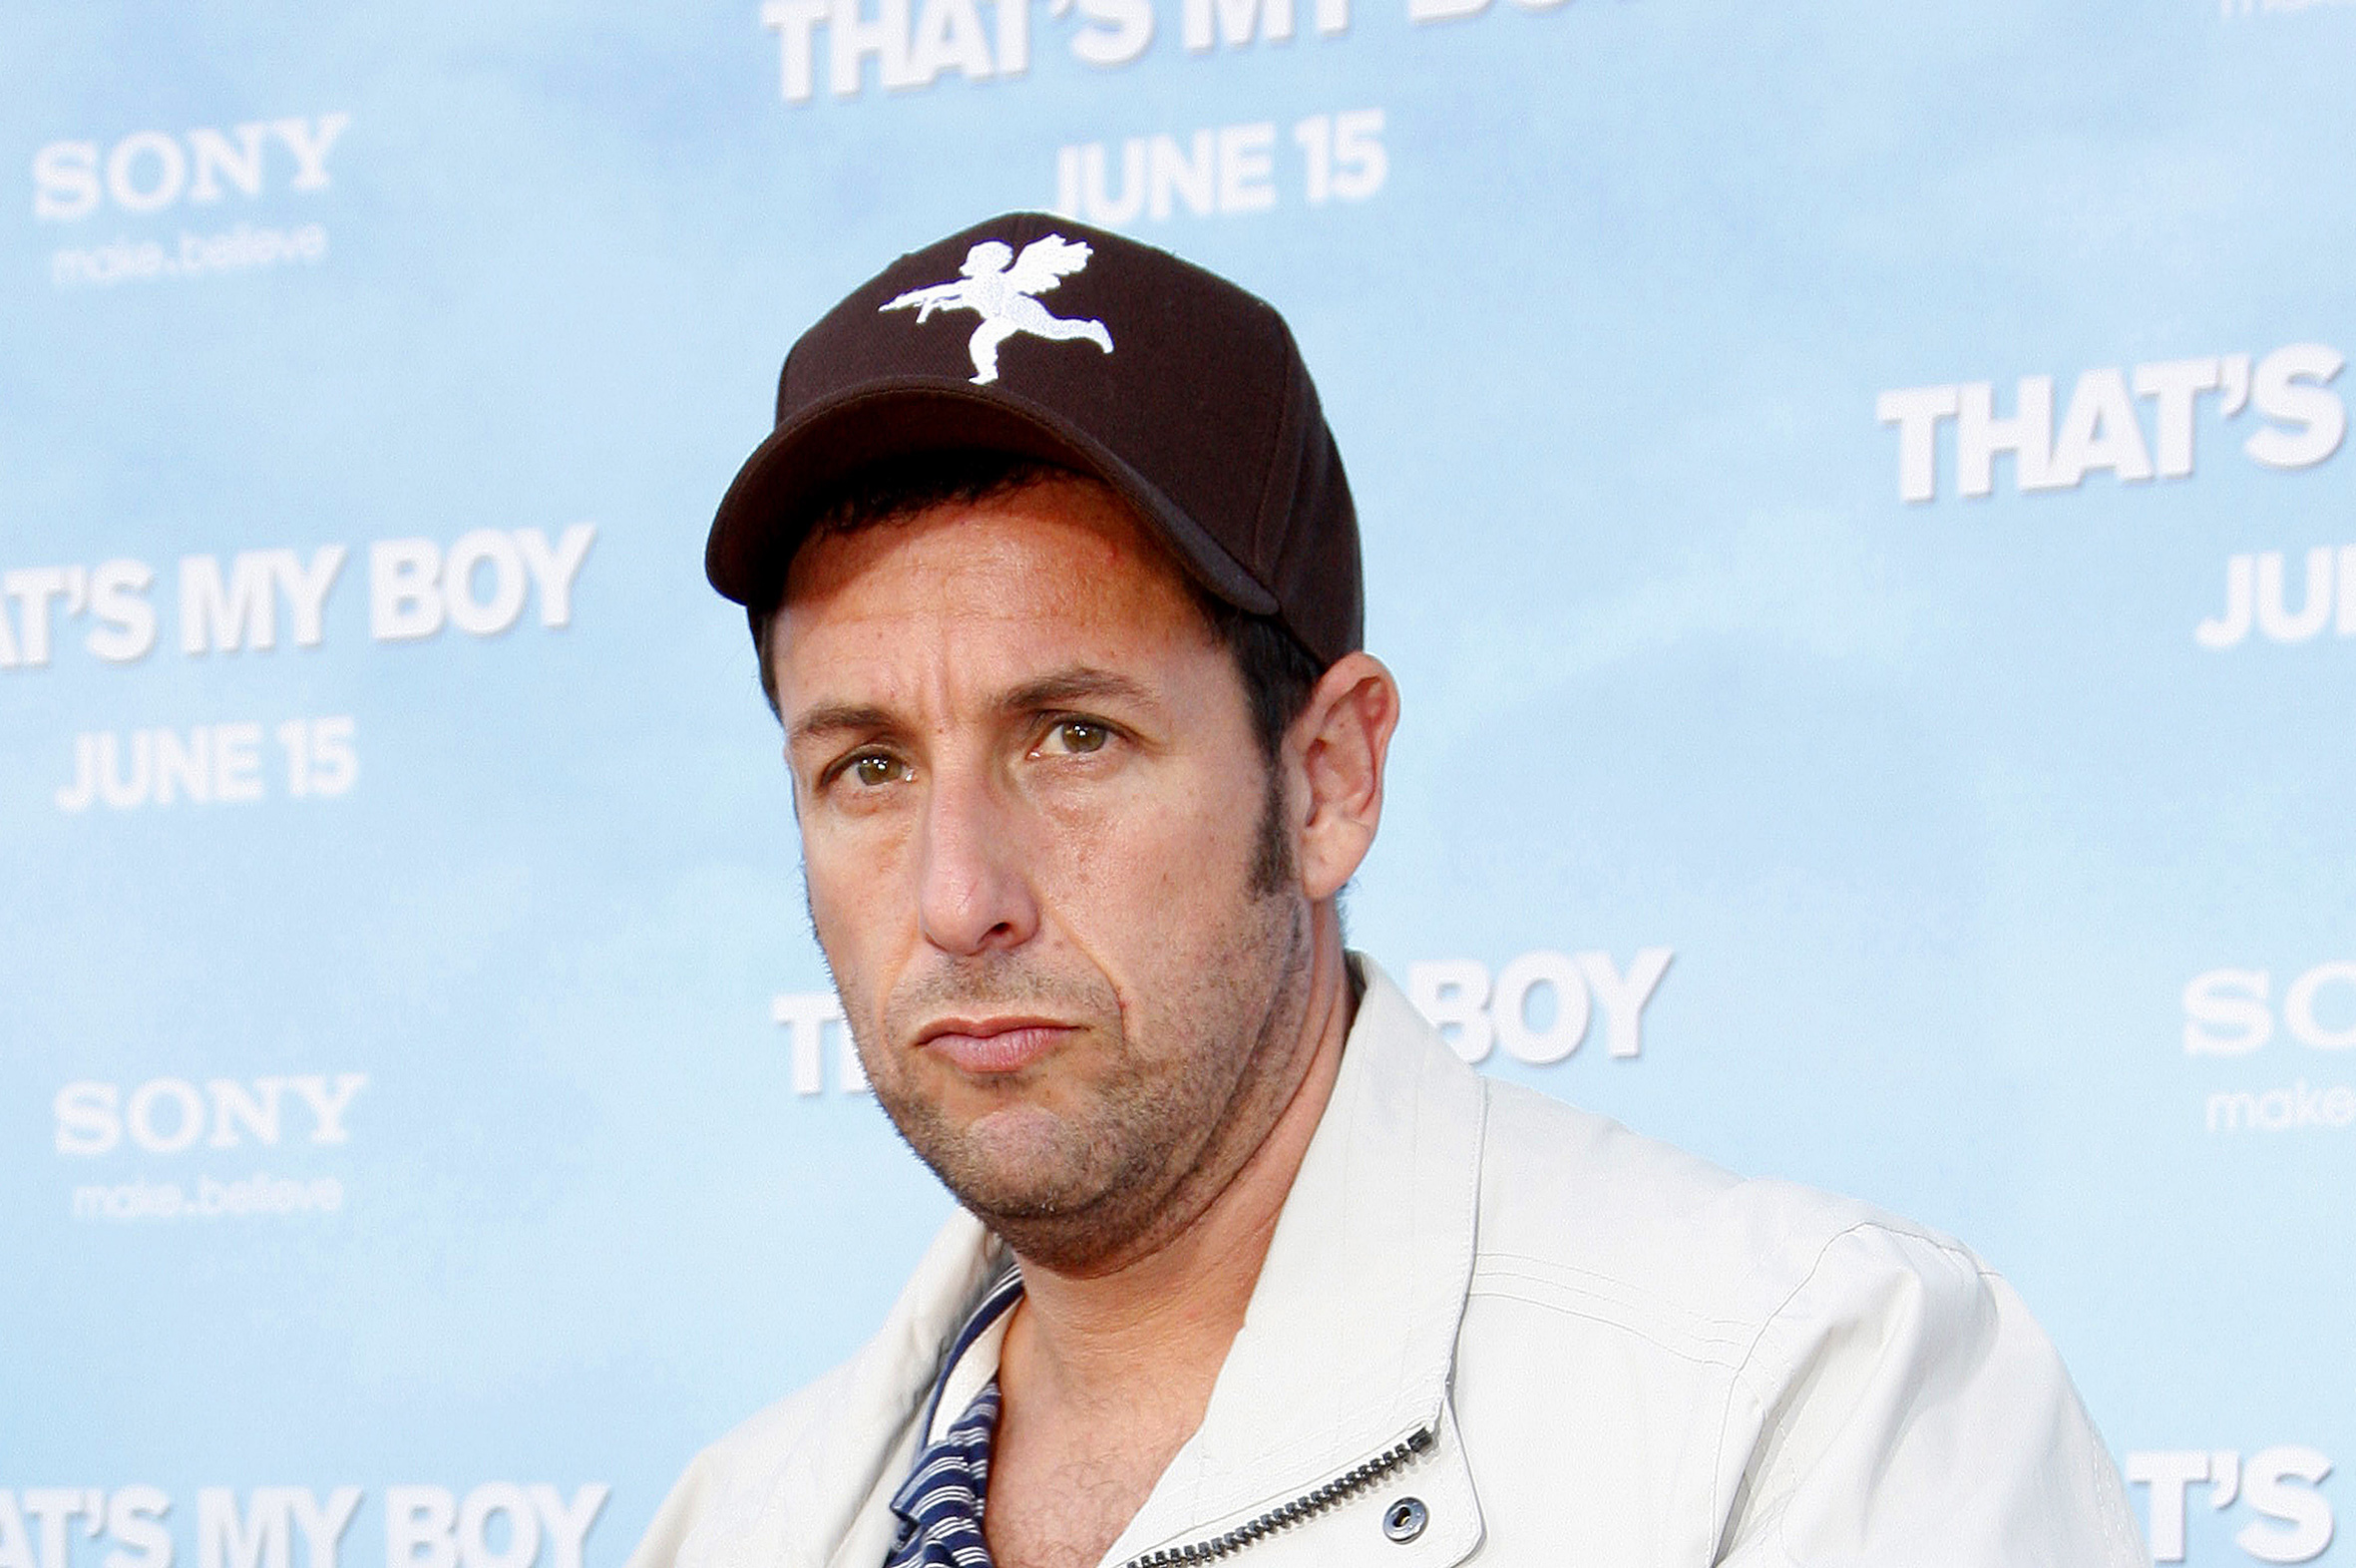 A picture of Adam Sandler